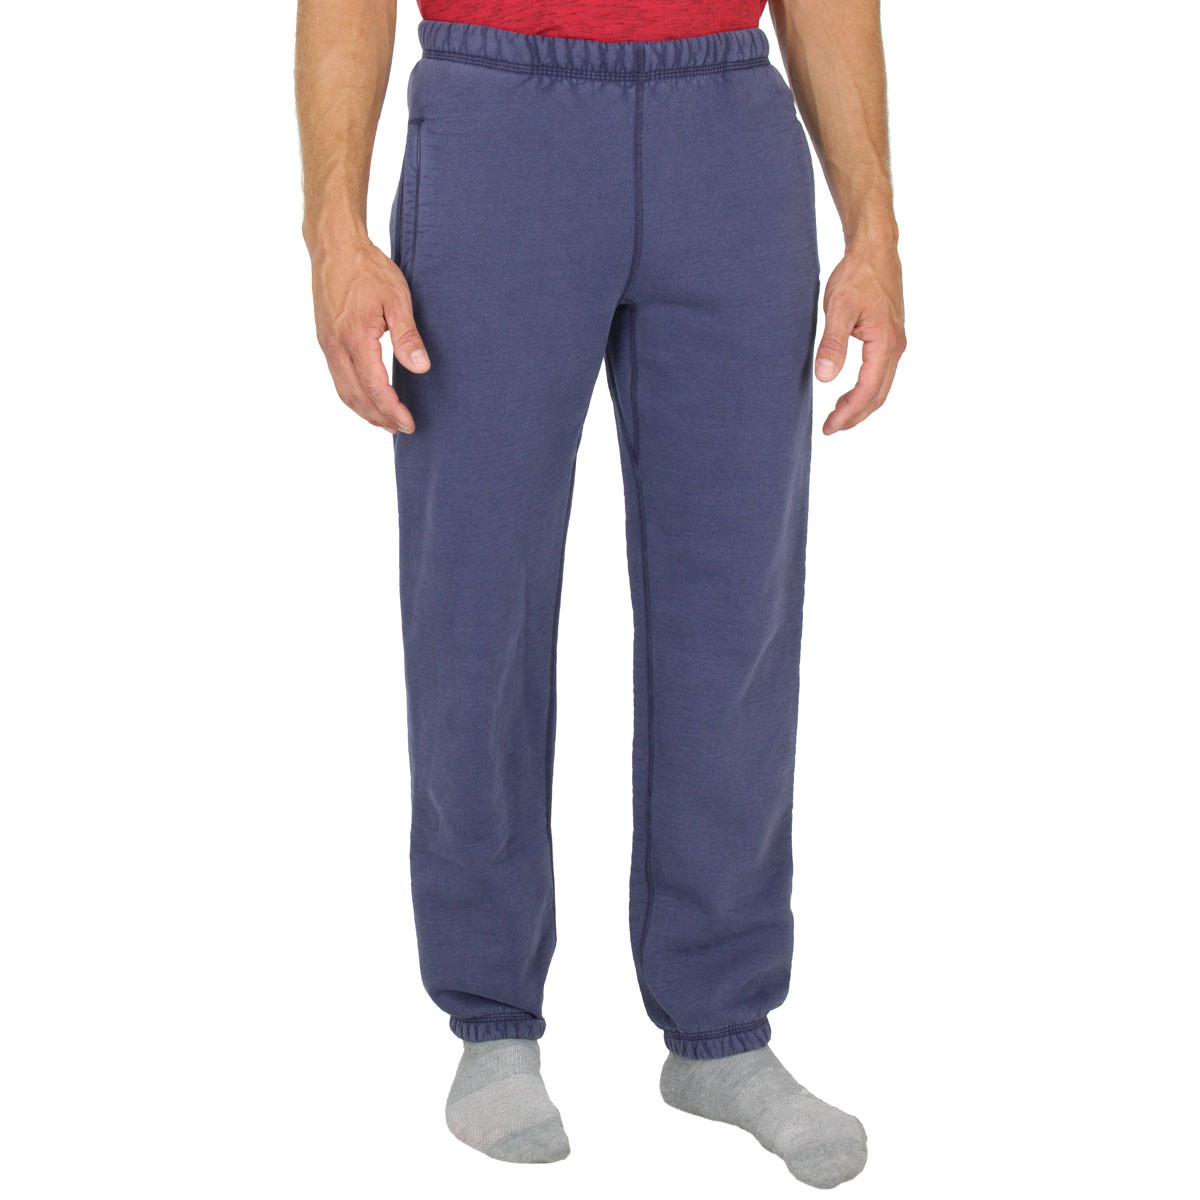 Thick 100 -cotton Cuffed Sweatpants Men Cottonmill